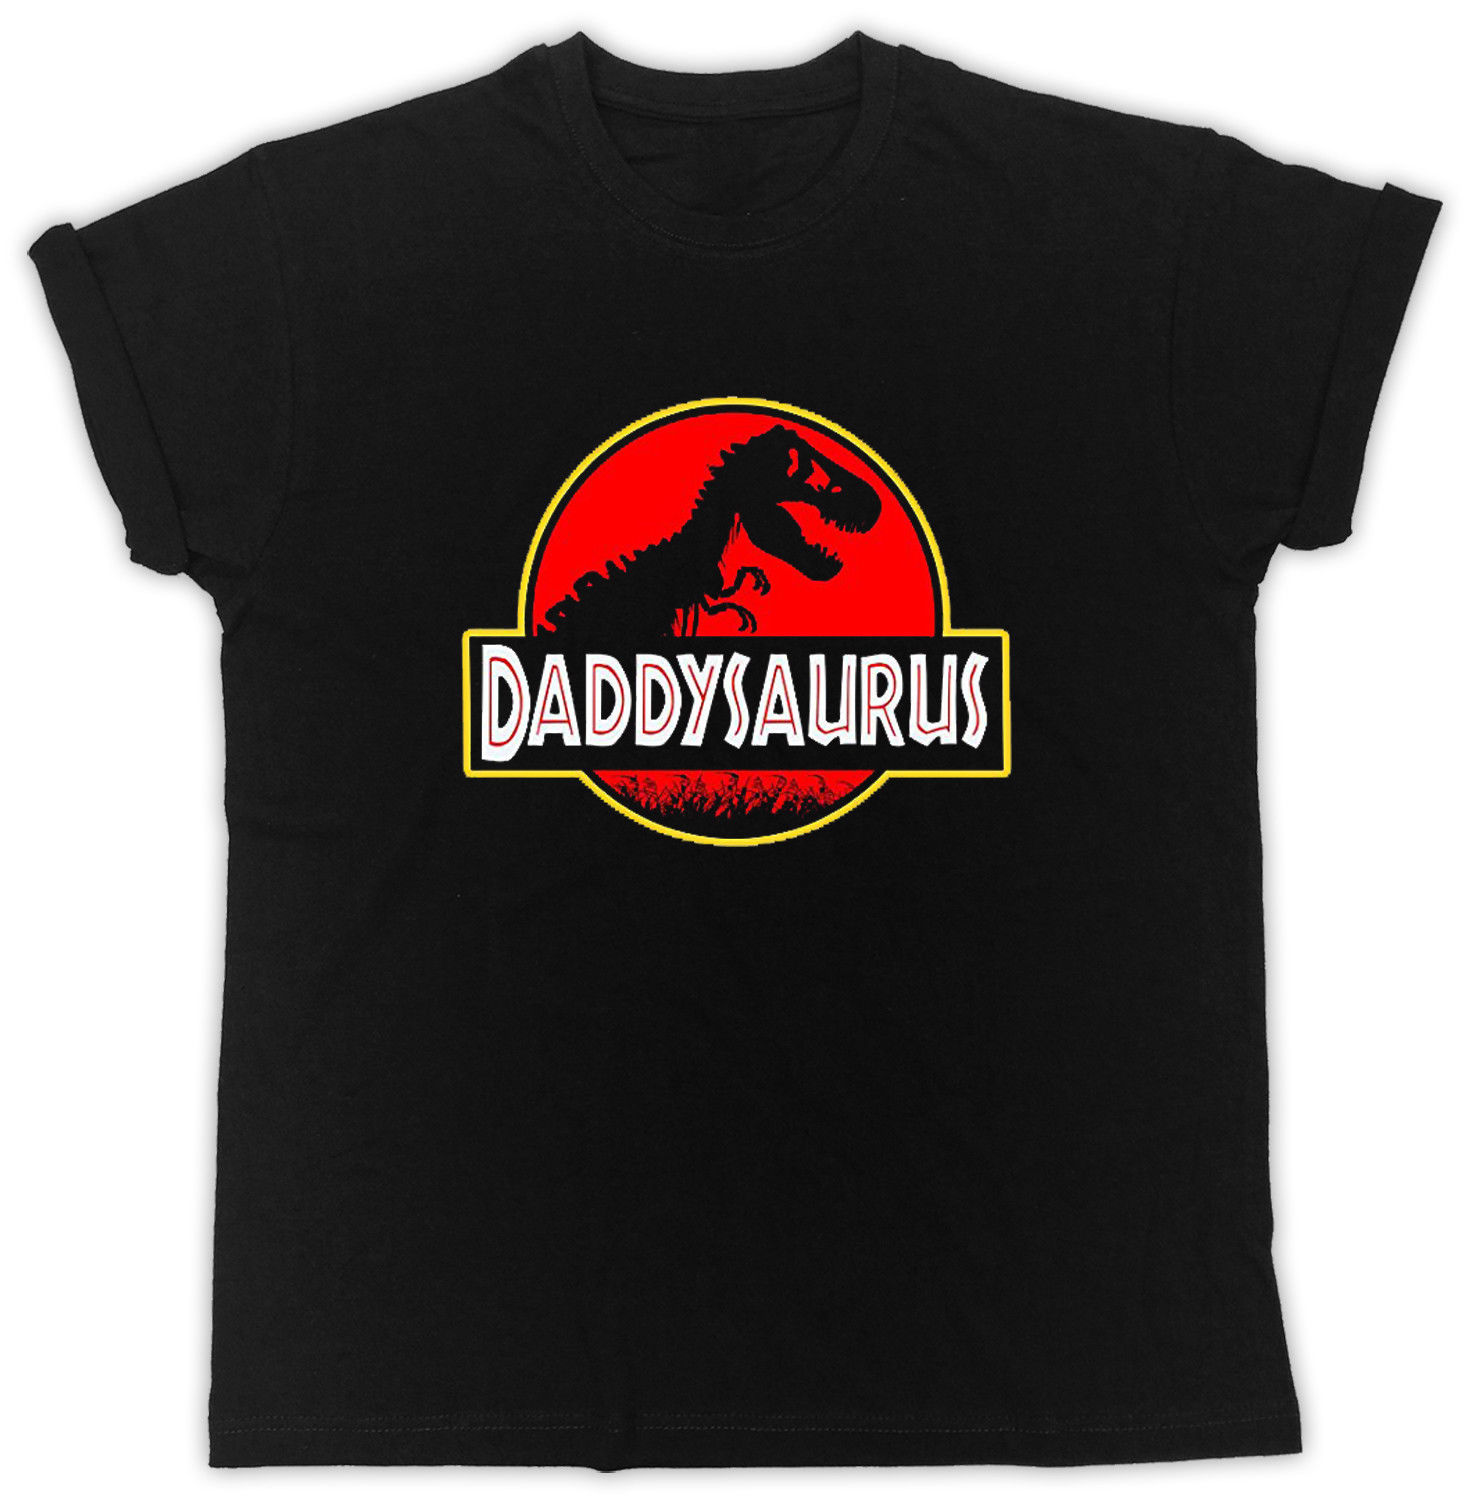 Fathers Day T-Shirt Dad T-Rex Old Dinosaur Ideal Gift Present Unisex T Shirt 100% Cotton Short Sleeve O-Neck Top Tee